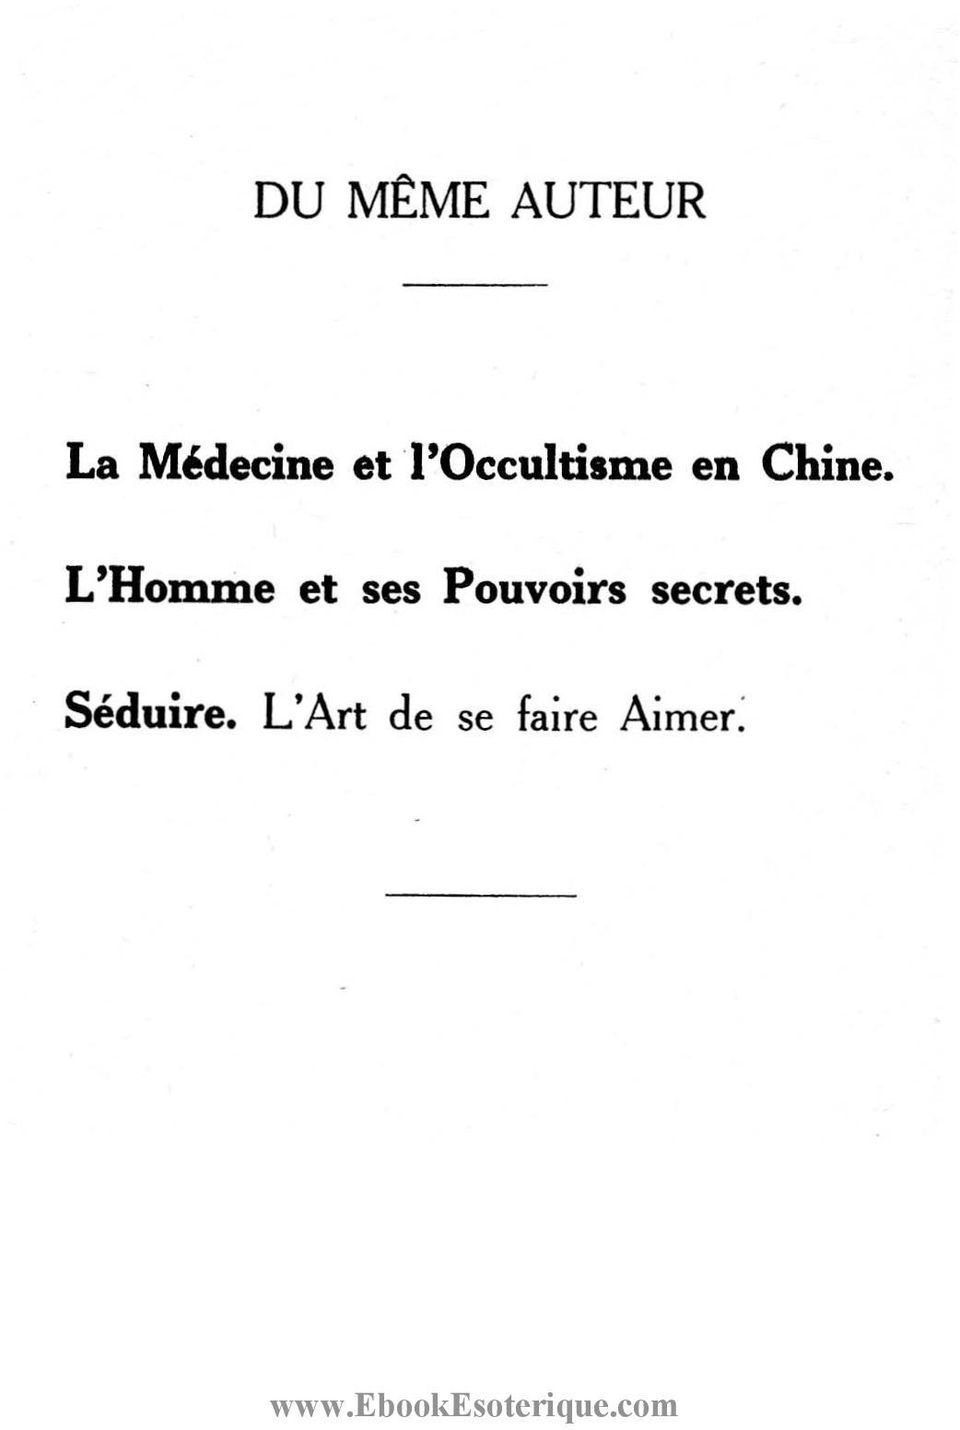 1'Occultisme en Chine.